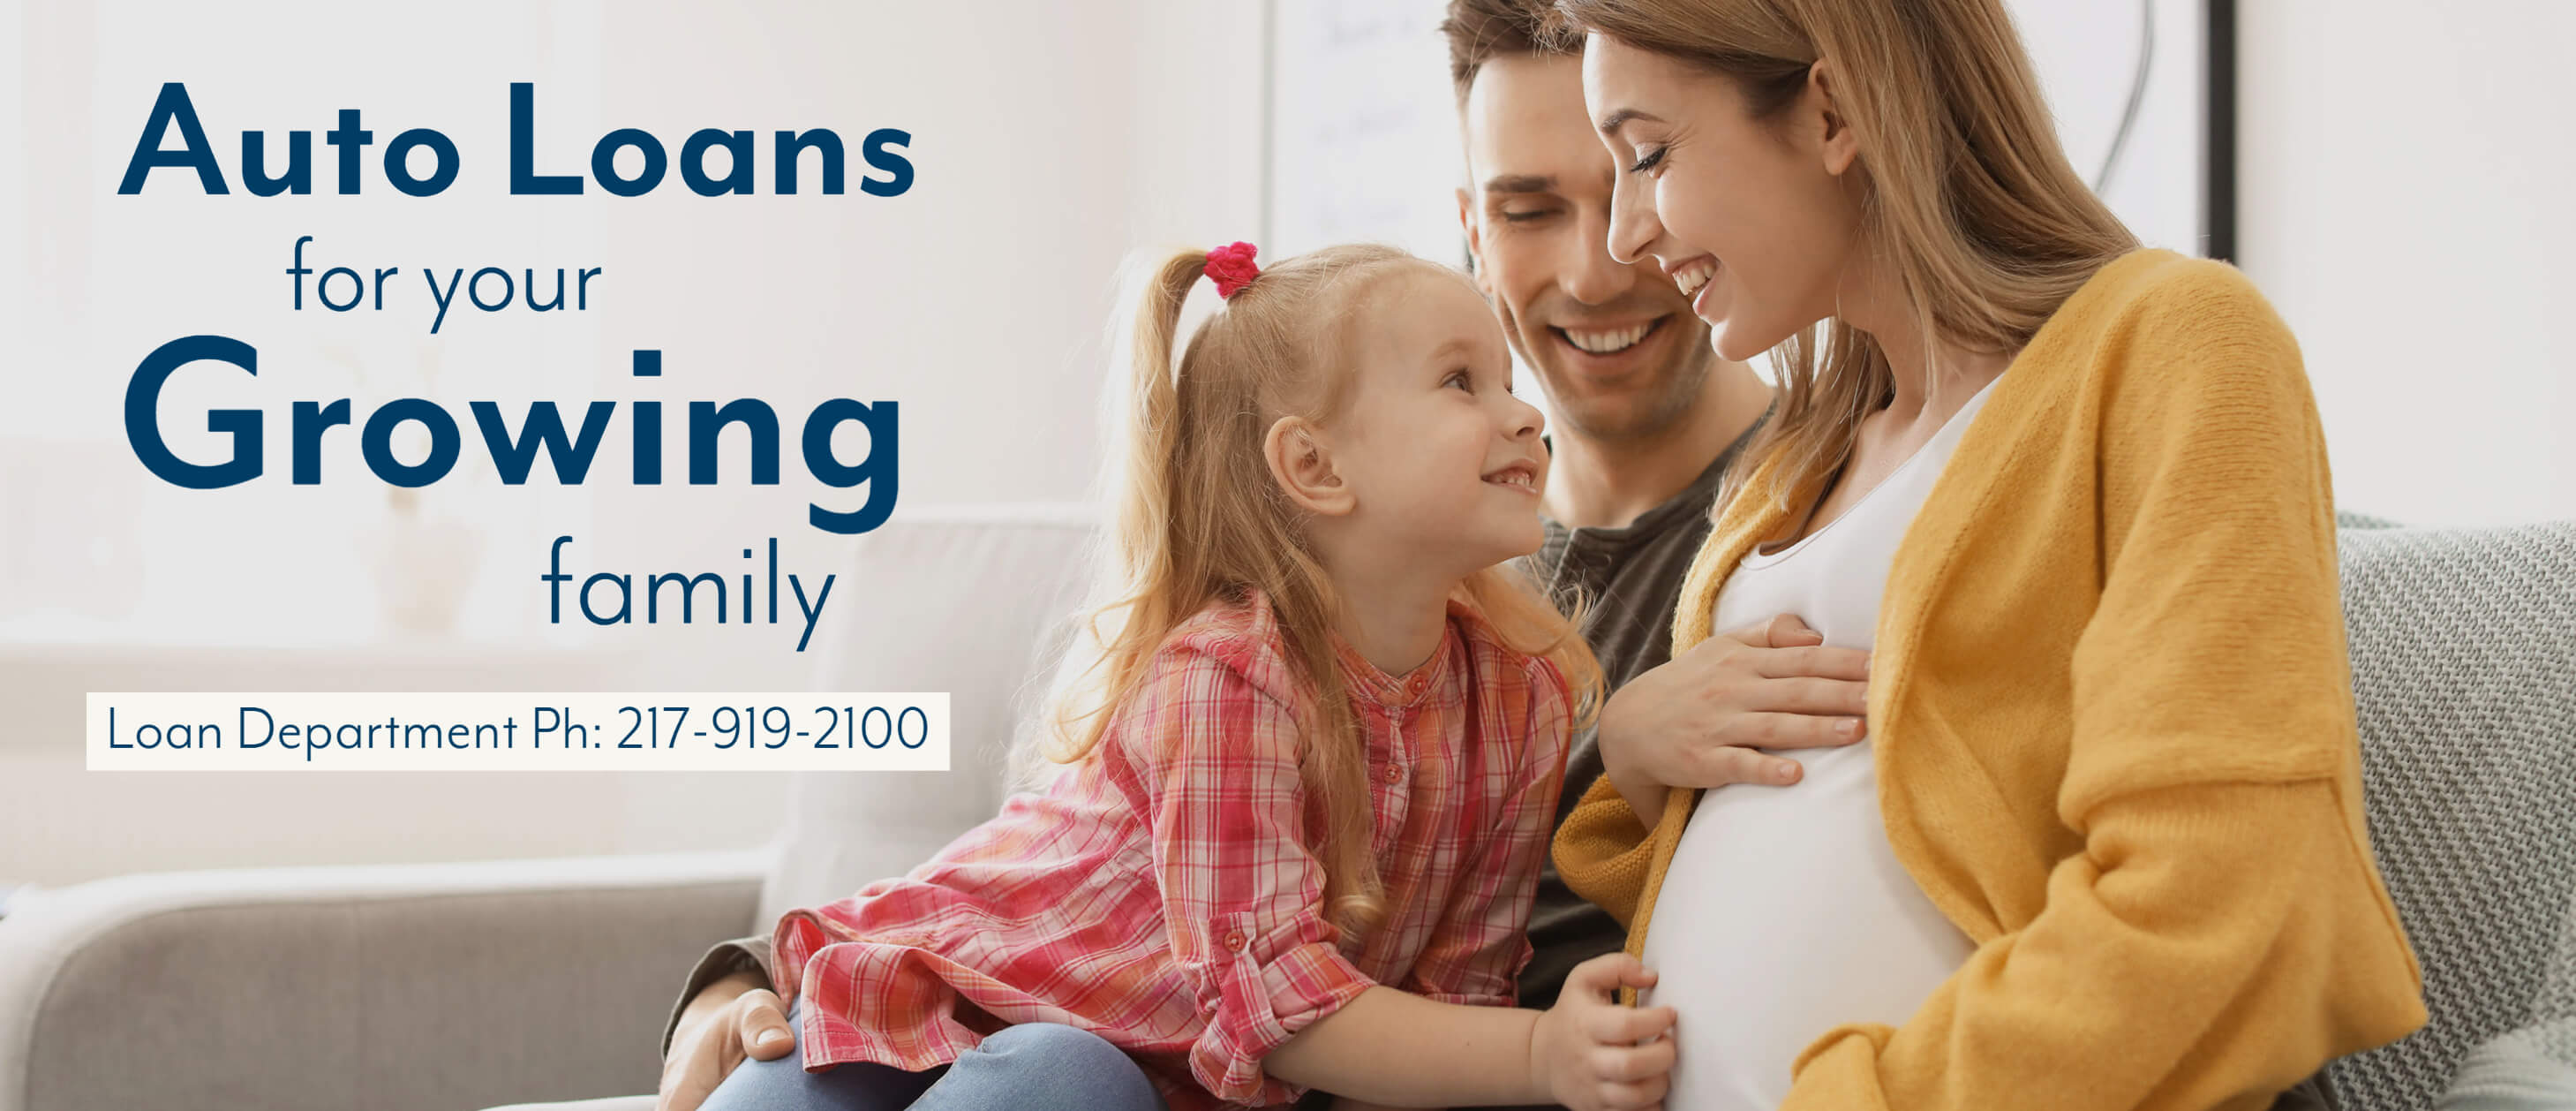 Auto Loans for Growing Family